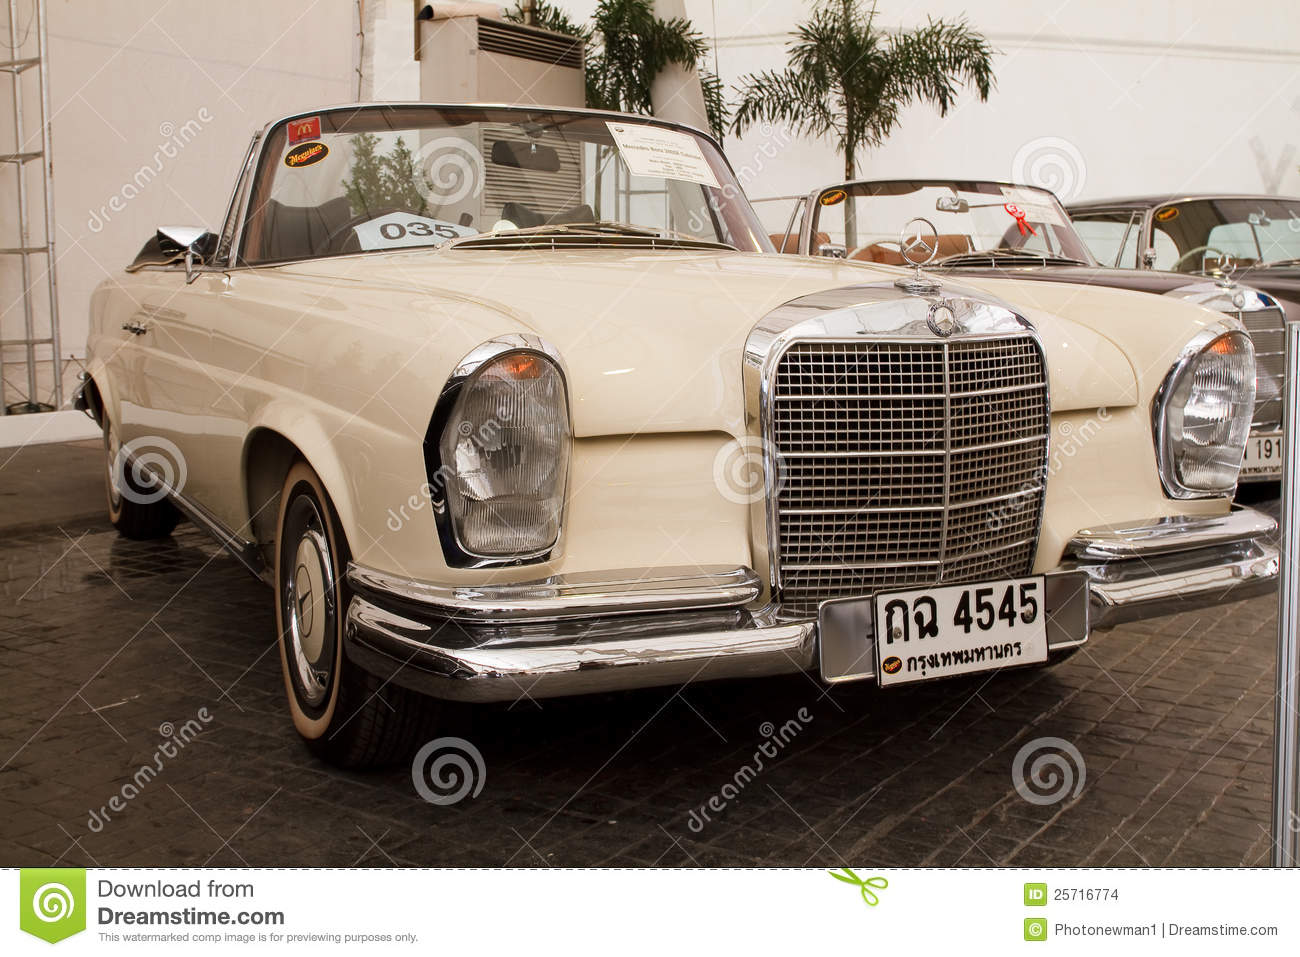 Mercedes benz 280se convertible vintage cars editorial for Mercedes benz vintage cars